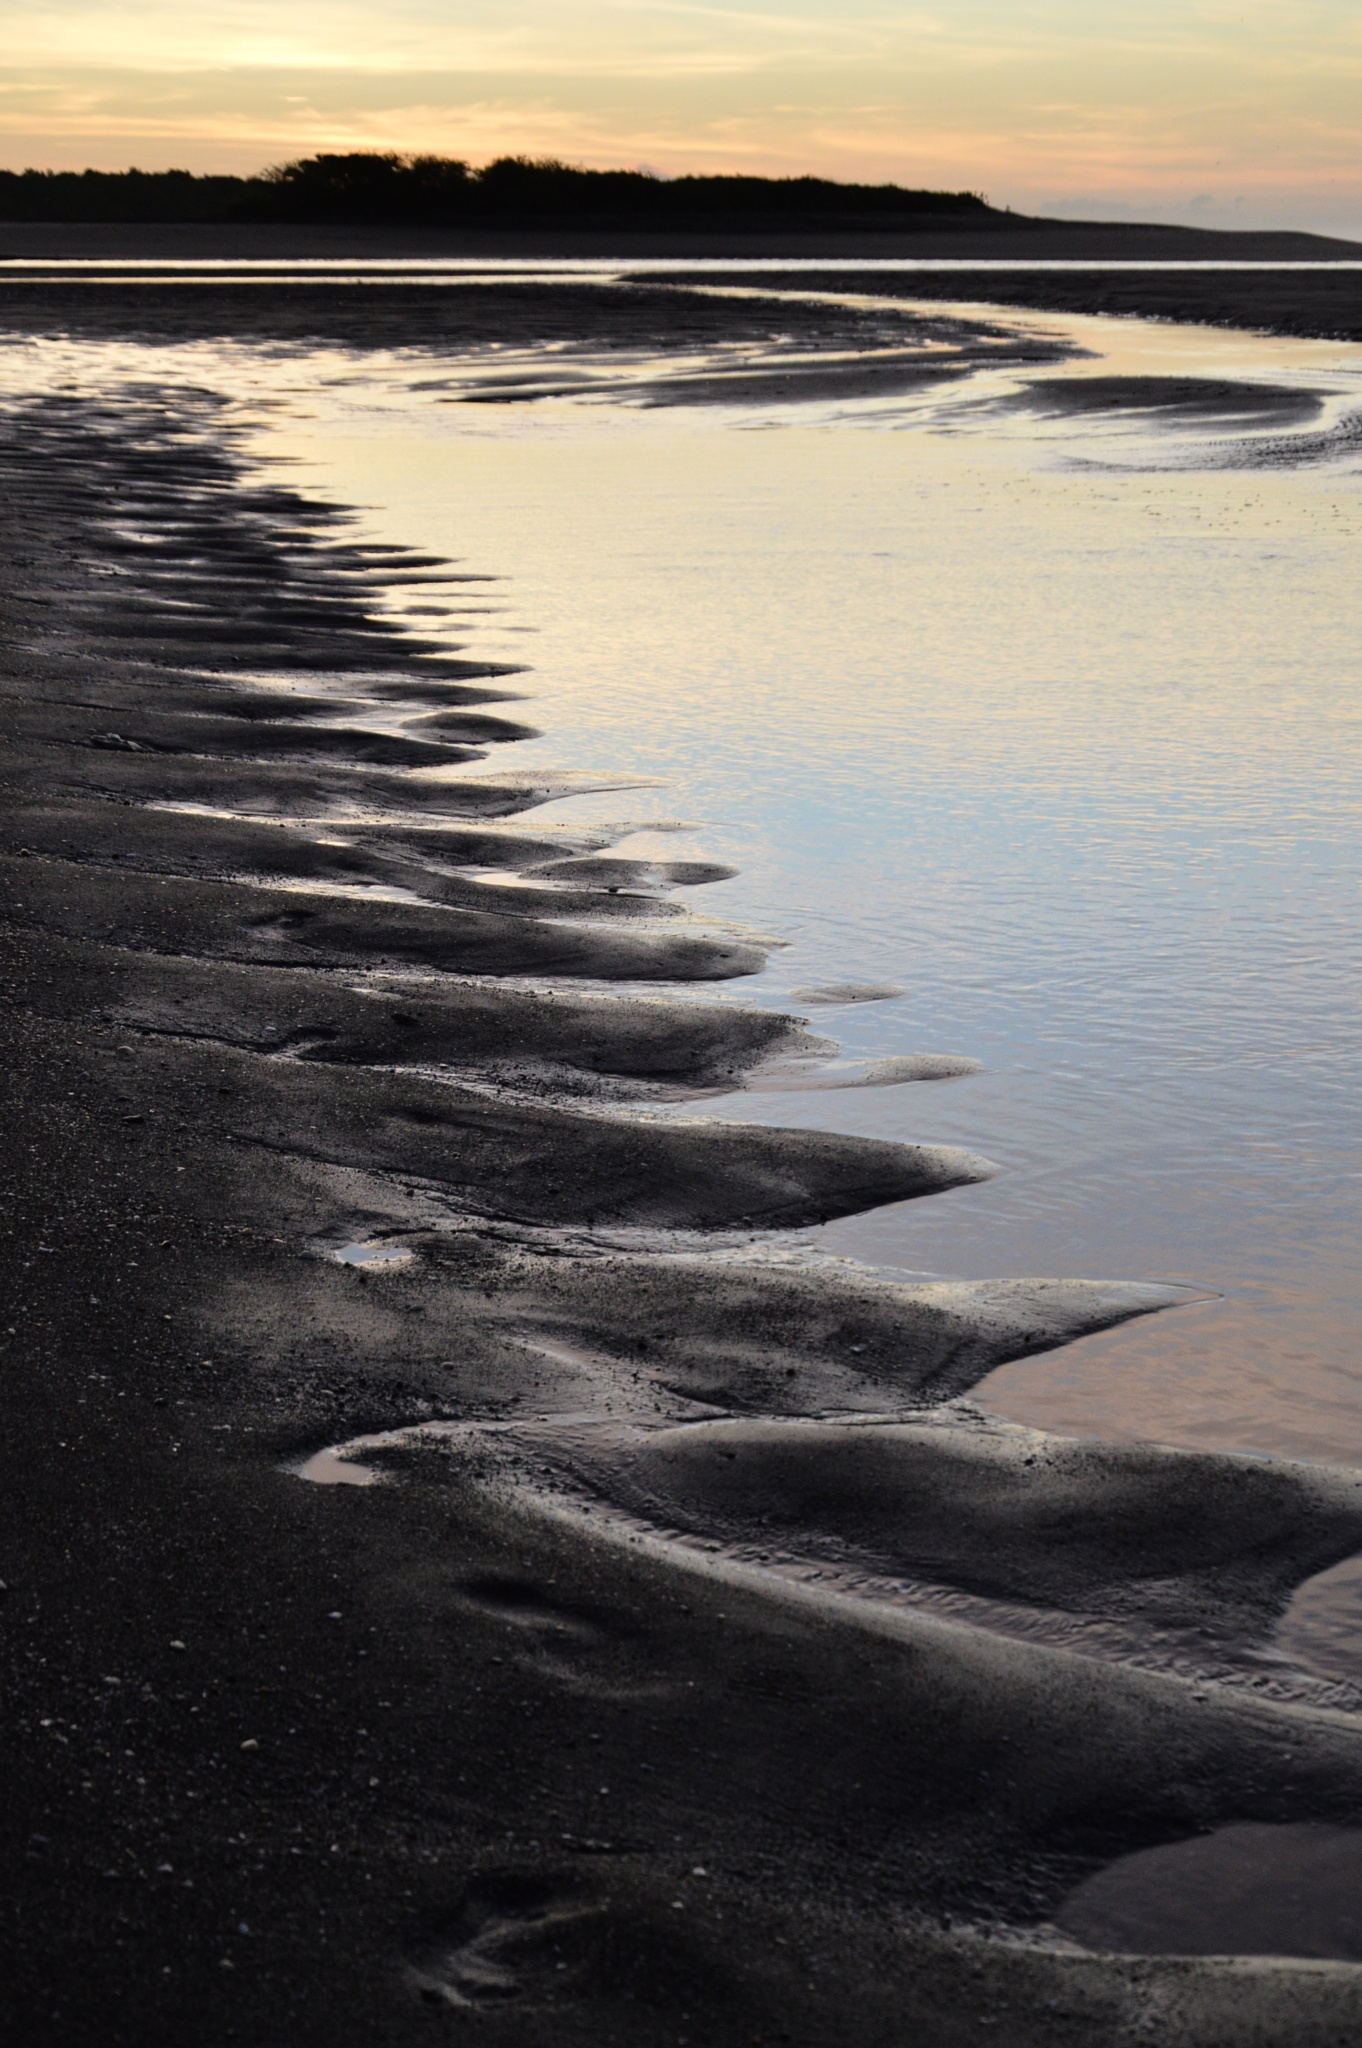 Sand pattern by Ives Martinez